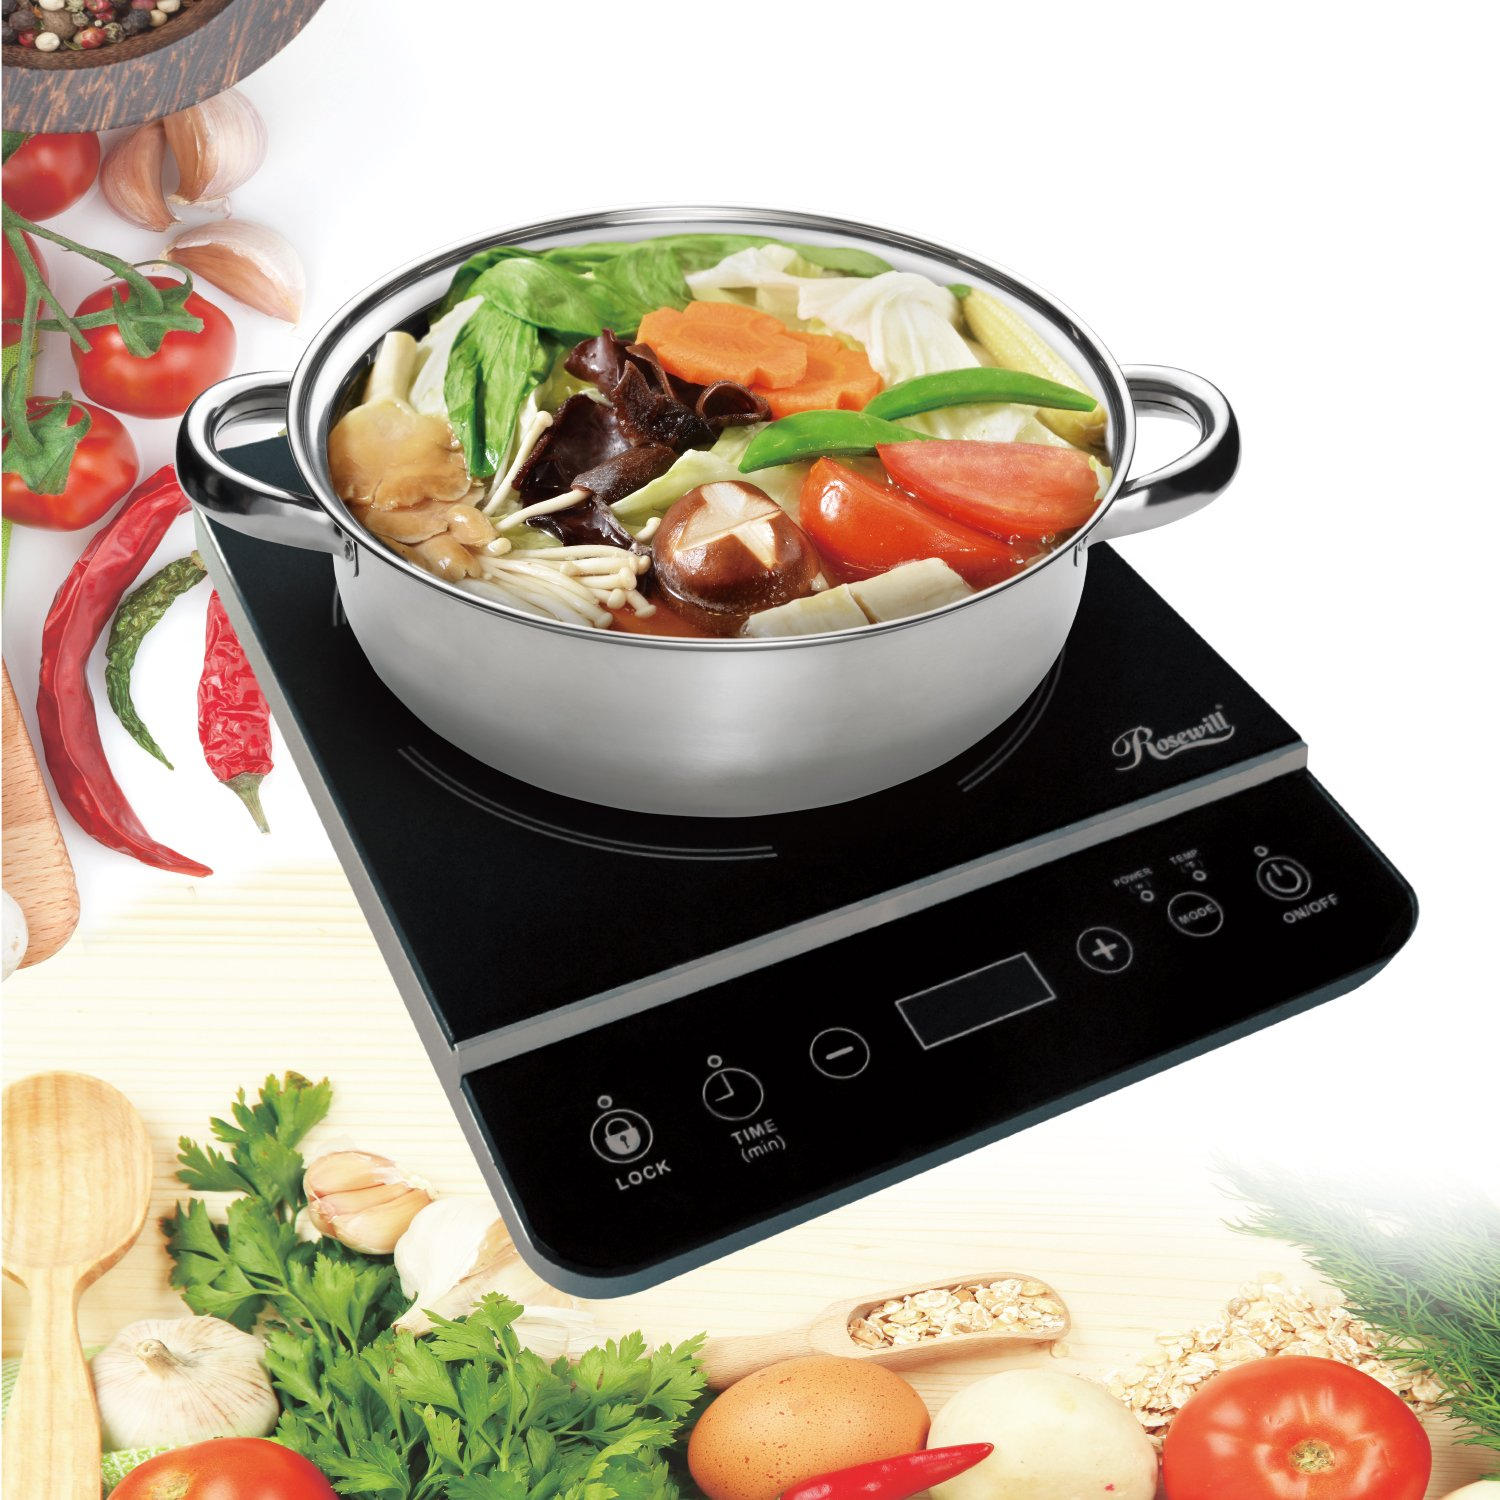 RHAI-13001 Induction Cooktop Rosewill Induction Cooker 1800 Watt Electric Burner with Stainless Steel Pot 10 3.5 QT 18-8